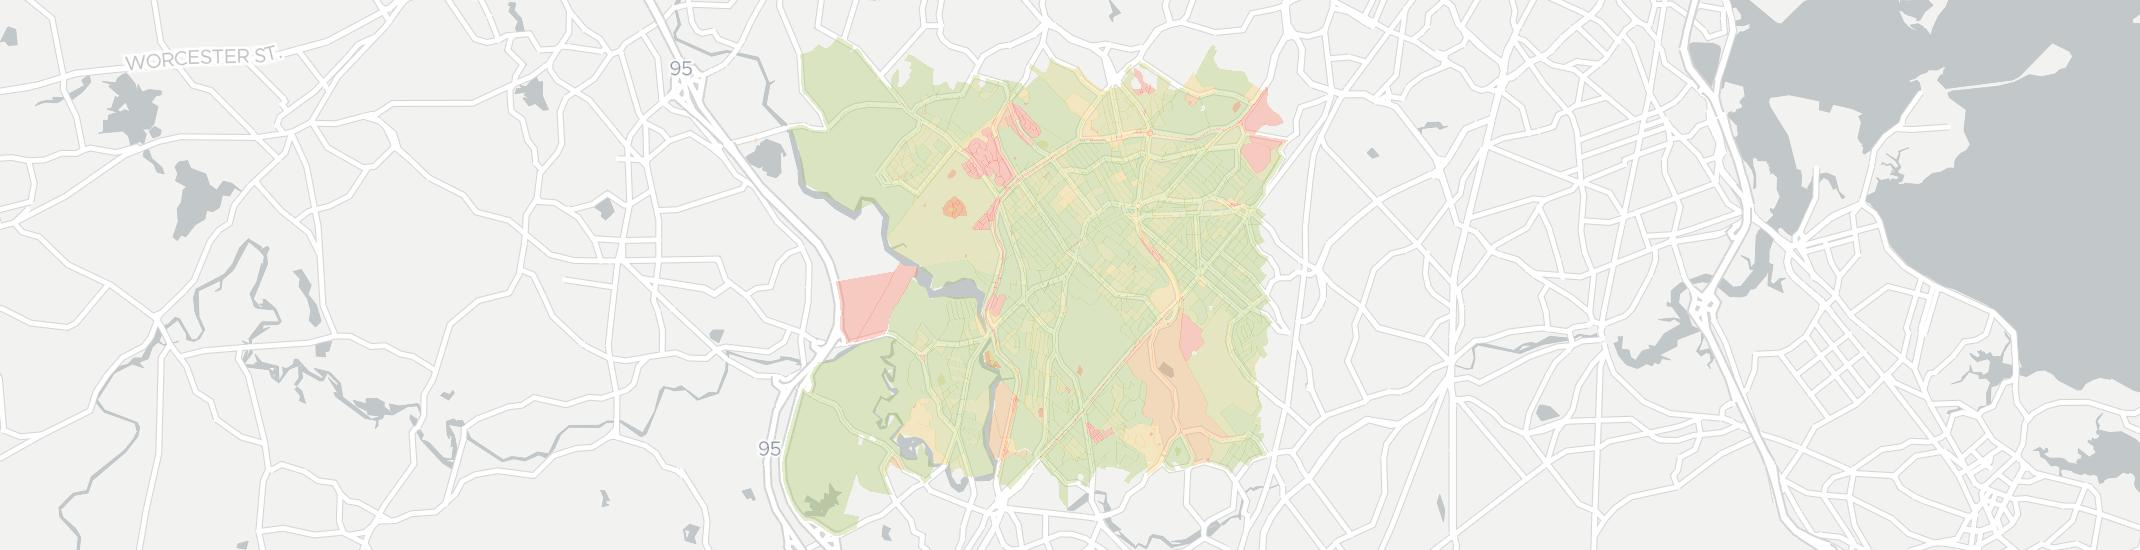 West Roxbury Internet Competition Map. Click for interactive map.